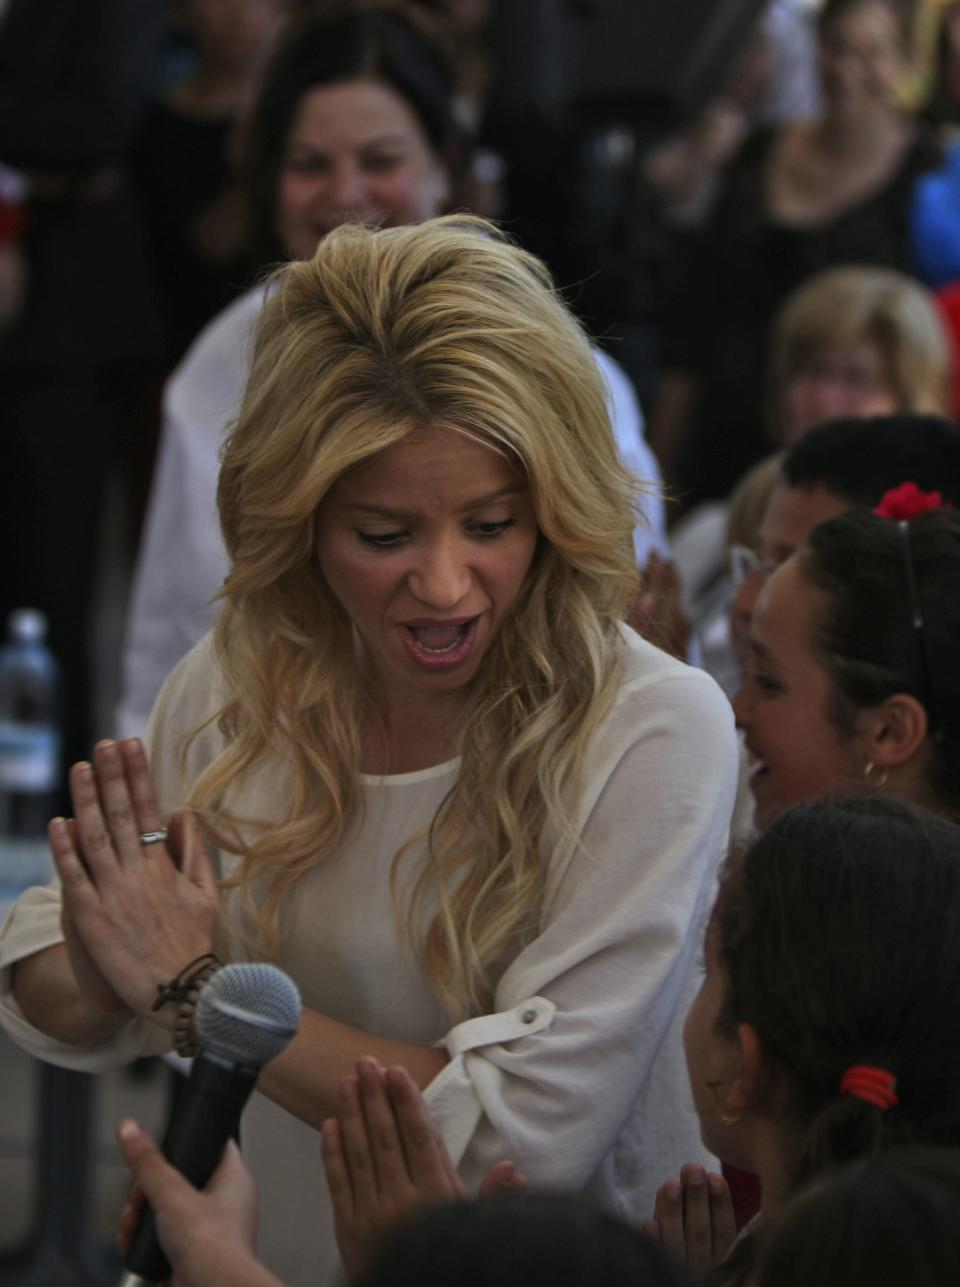 Colombian singer Shakira, left, dances with children while visiting a school in Jerusalem, Tuesday, June 21, 2011. Shakira is attending the Presidential Conference, sponsored by Israeli President Shimon Peres and will take part in panel alongside comedian Sarah Silverman. (AP Photo/Tara Todras-Whitehill)